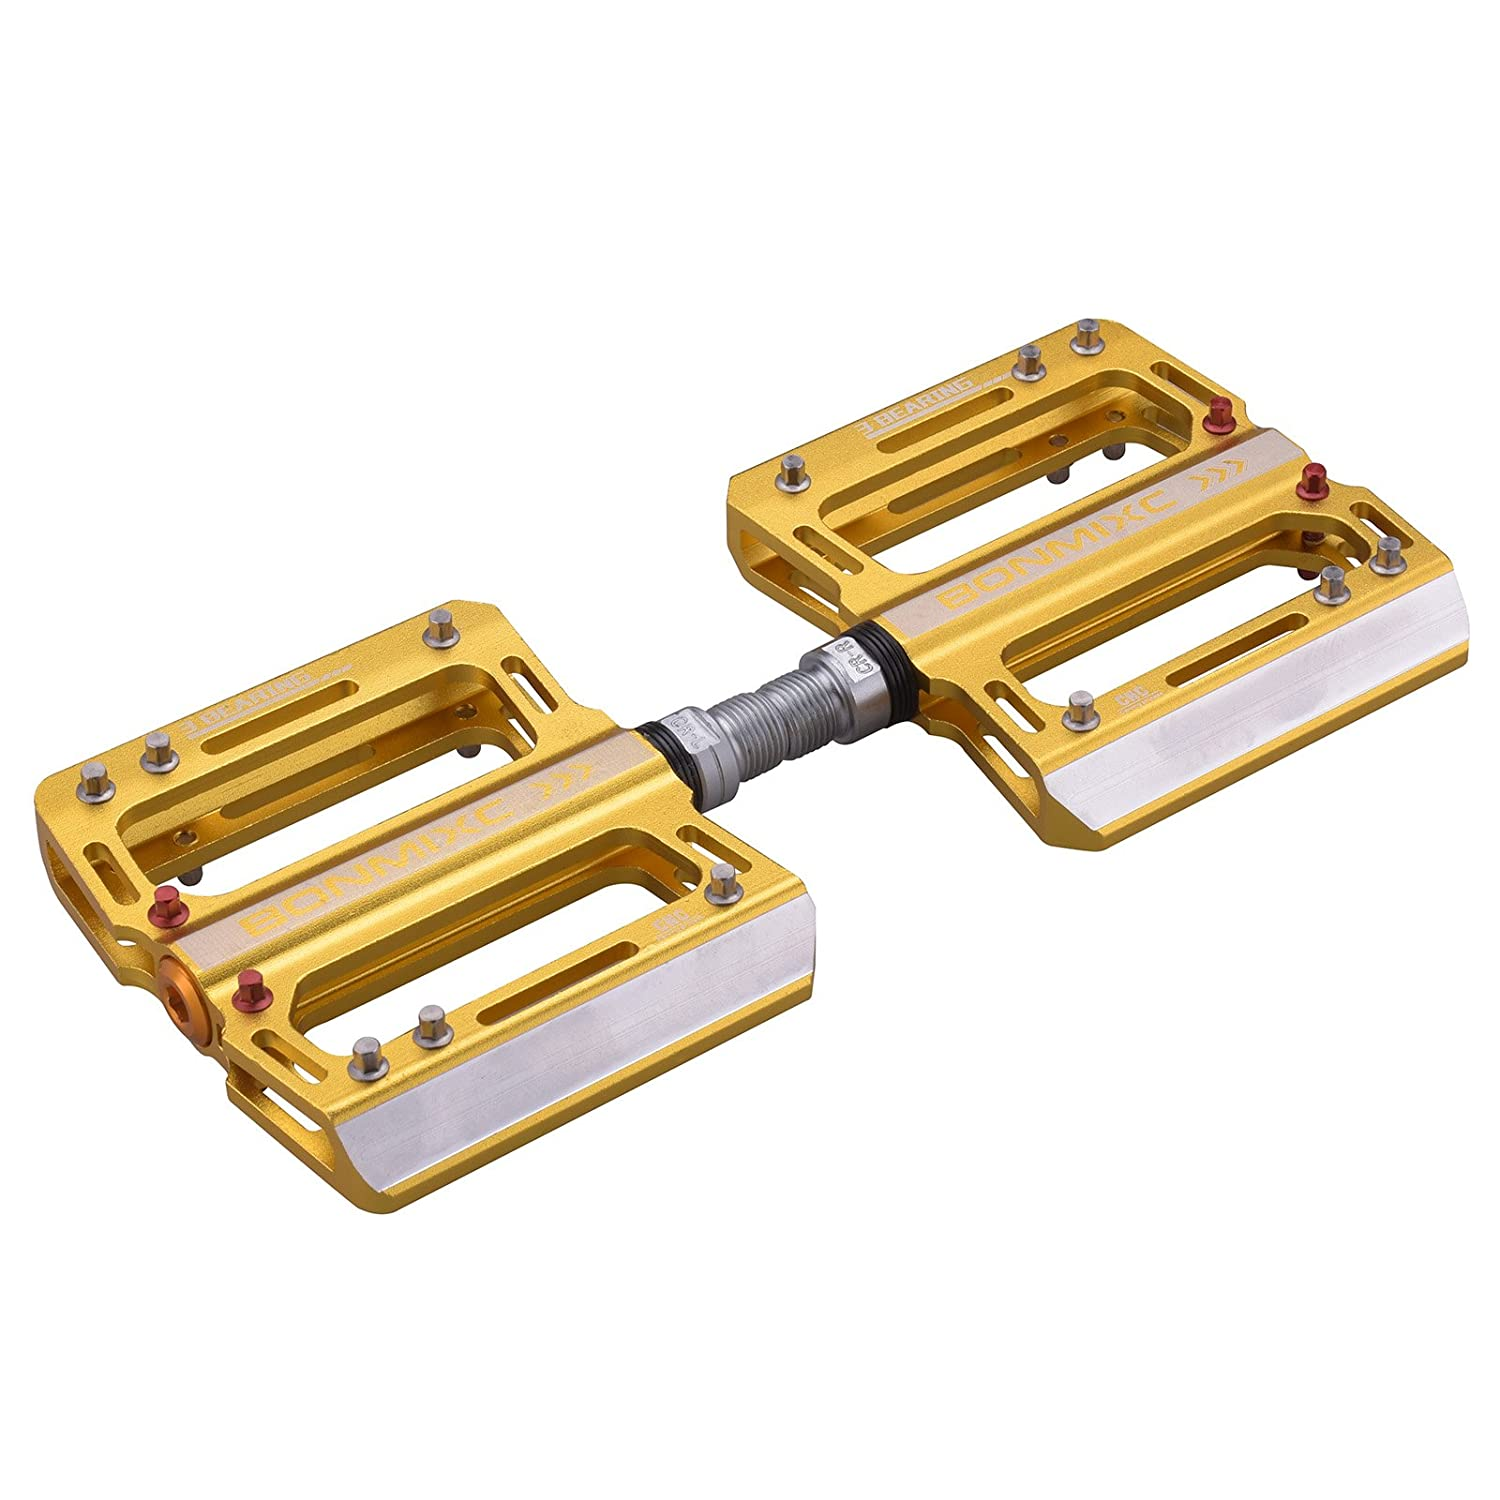 BONMIXC Mountain Bike Pedals, 9 16 Cycling Three Pcs Sealed Bearing Bicycle Pedals